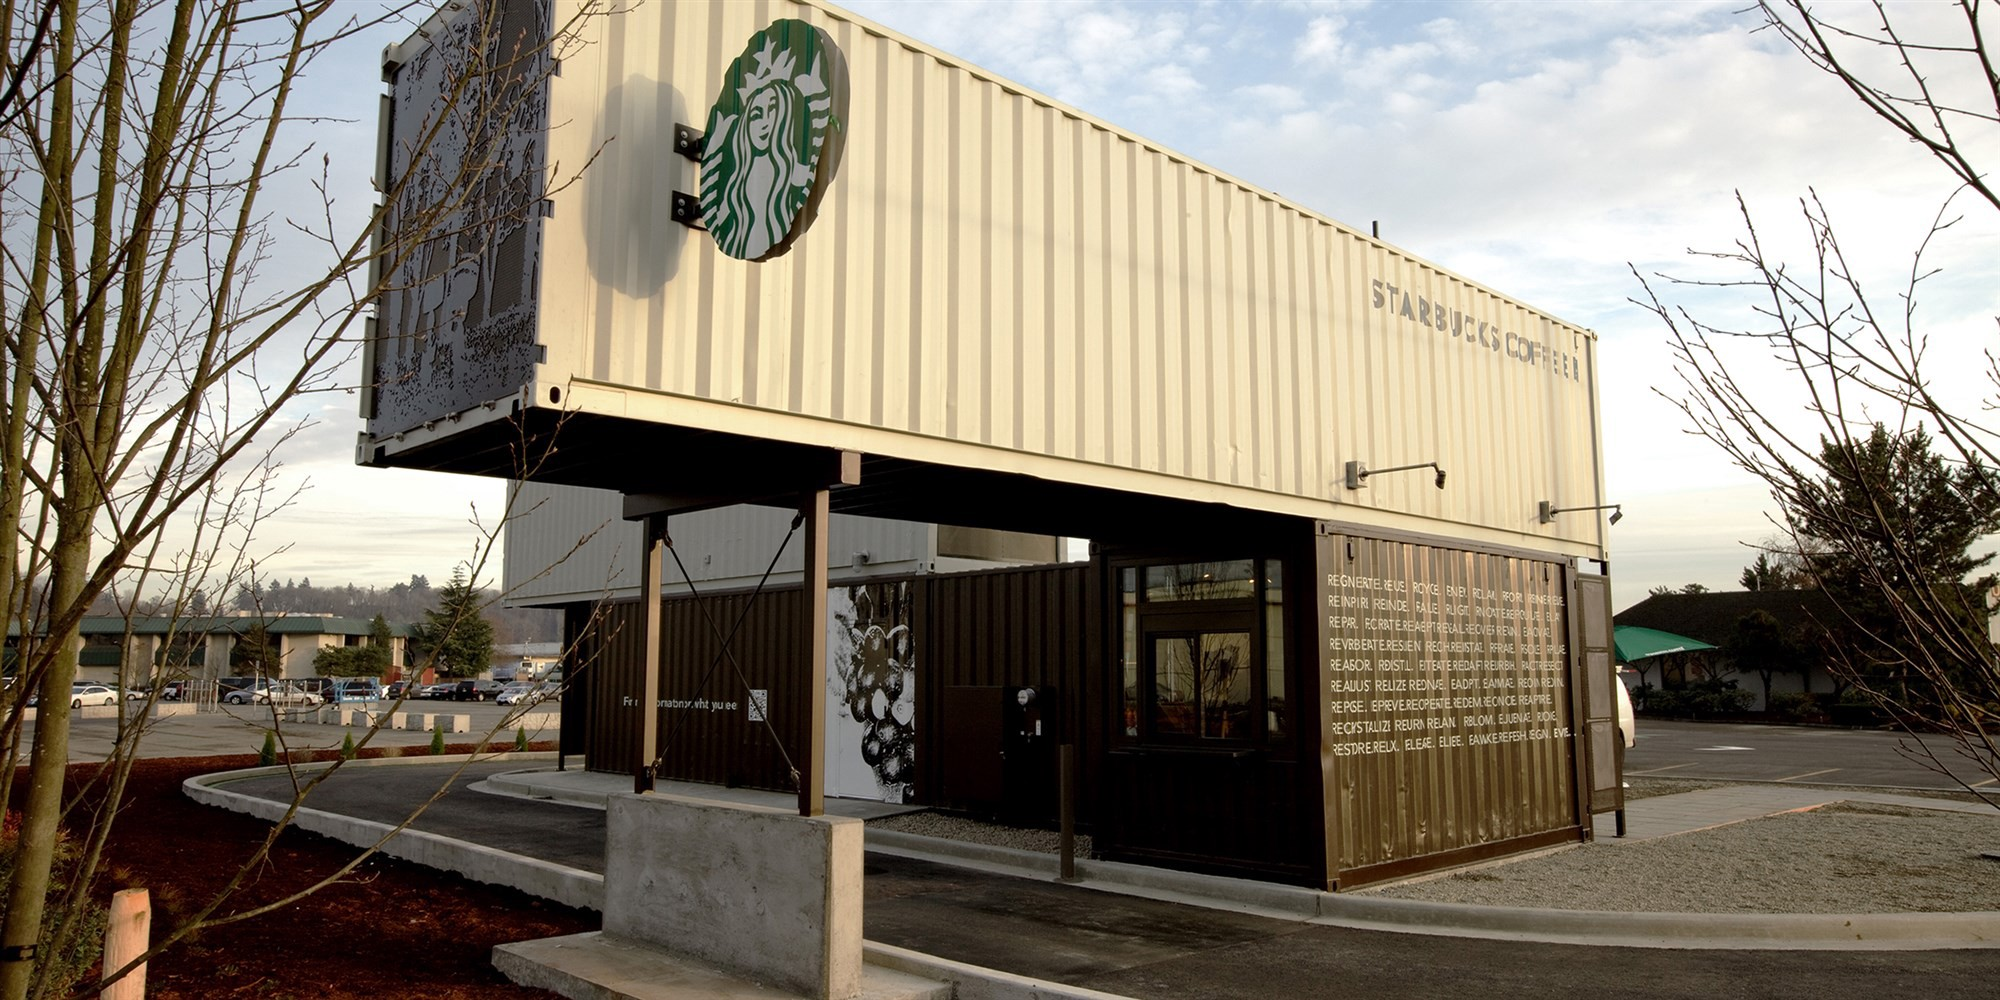 Recycled Shipping Container Coffee Shop from Starbucks